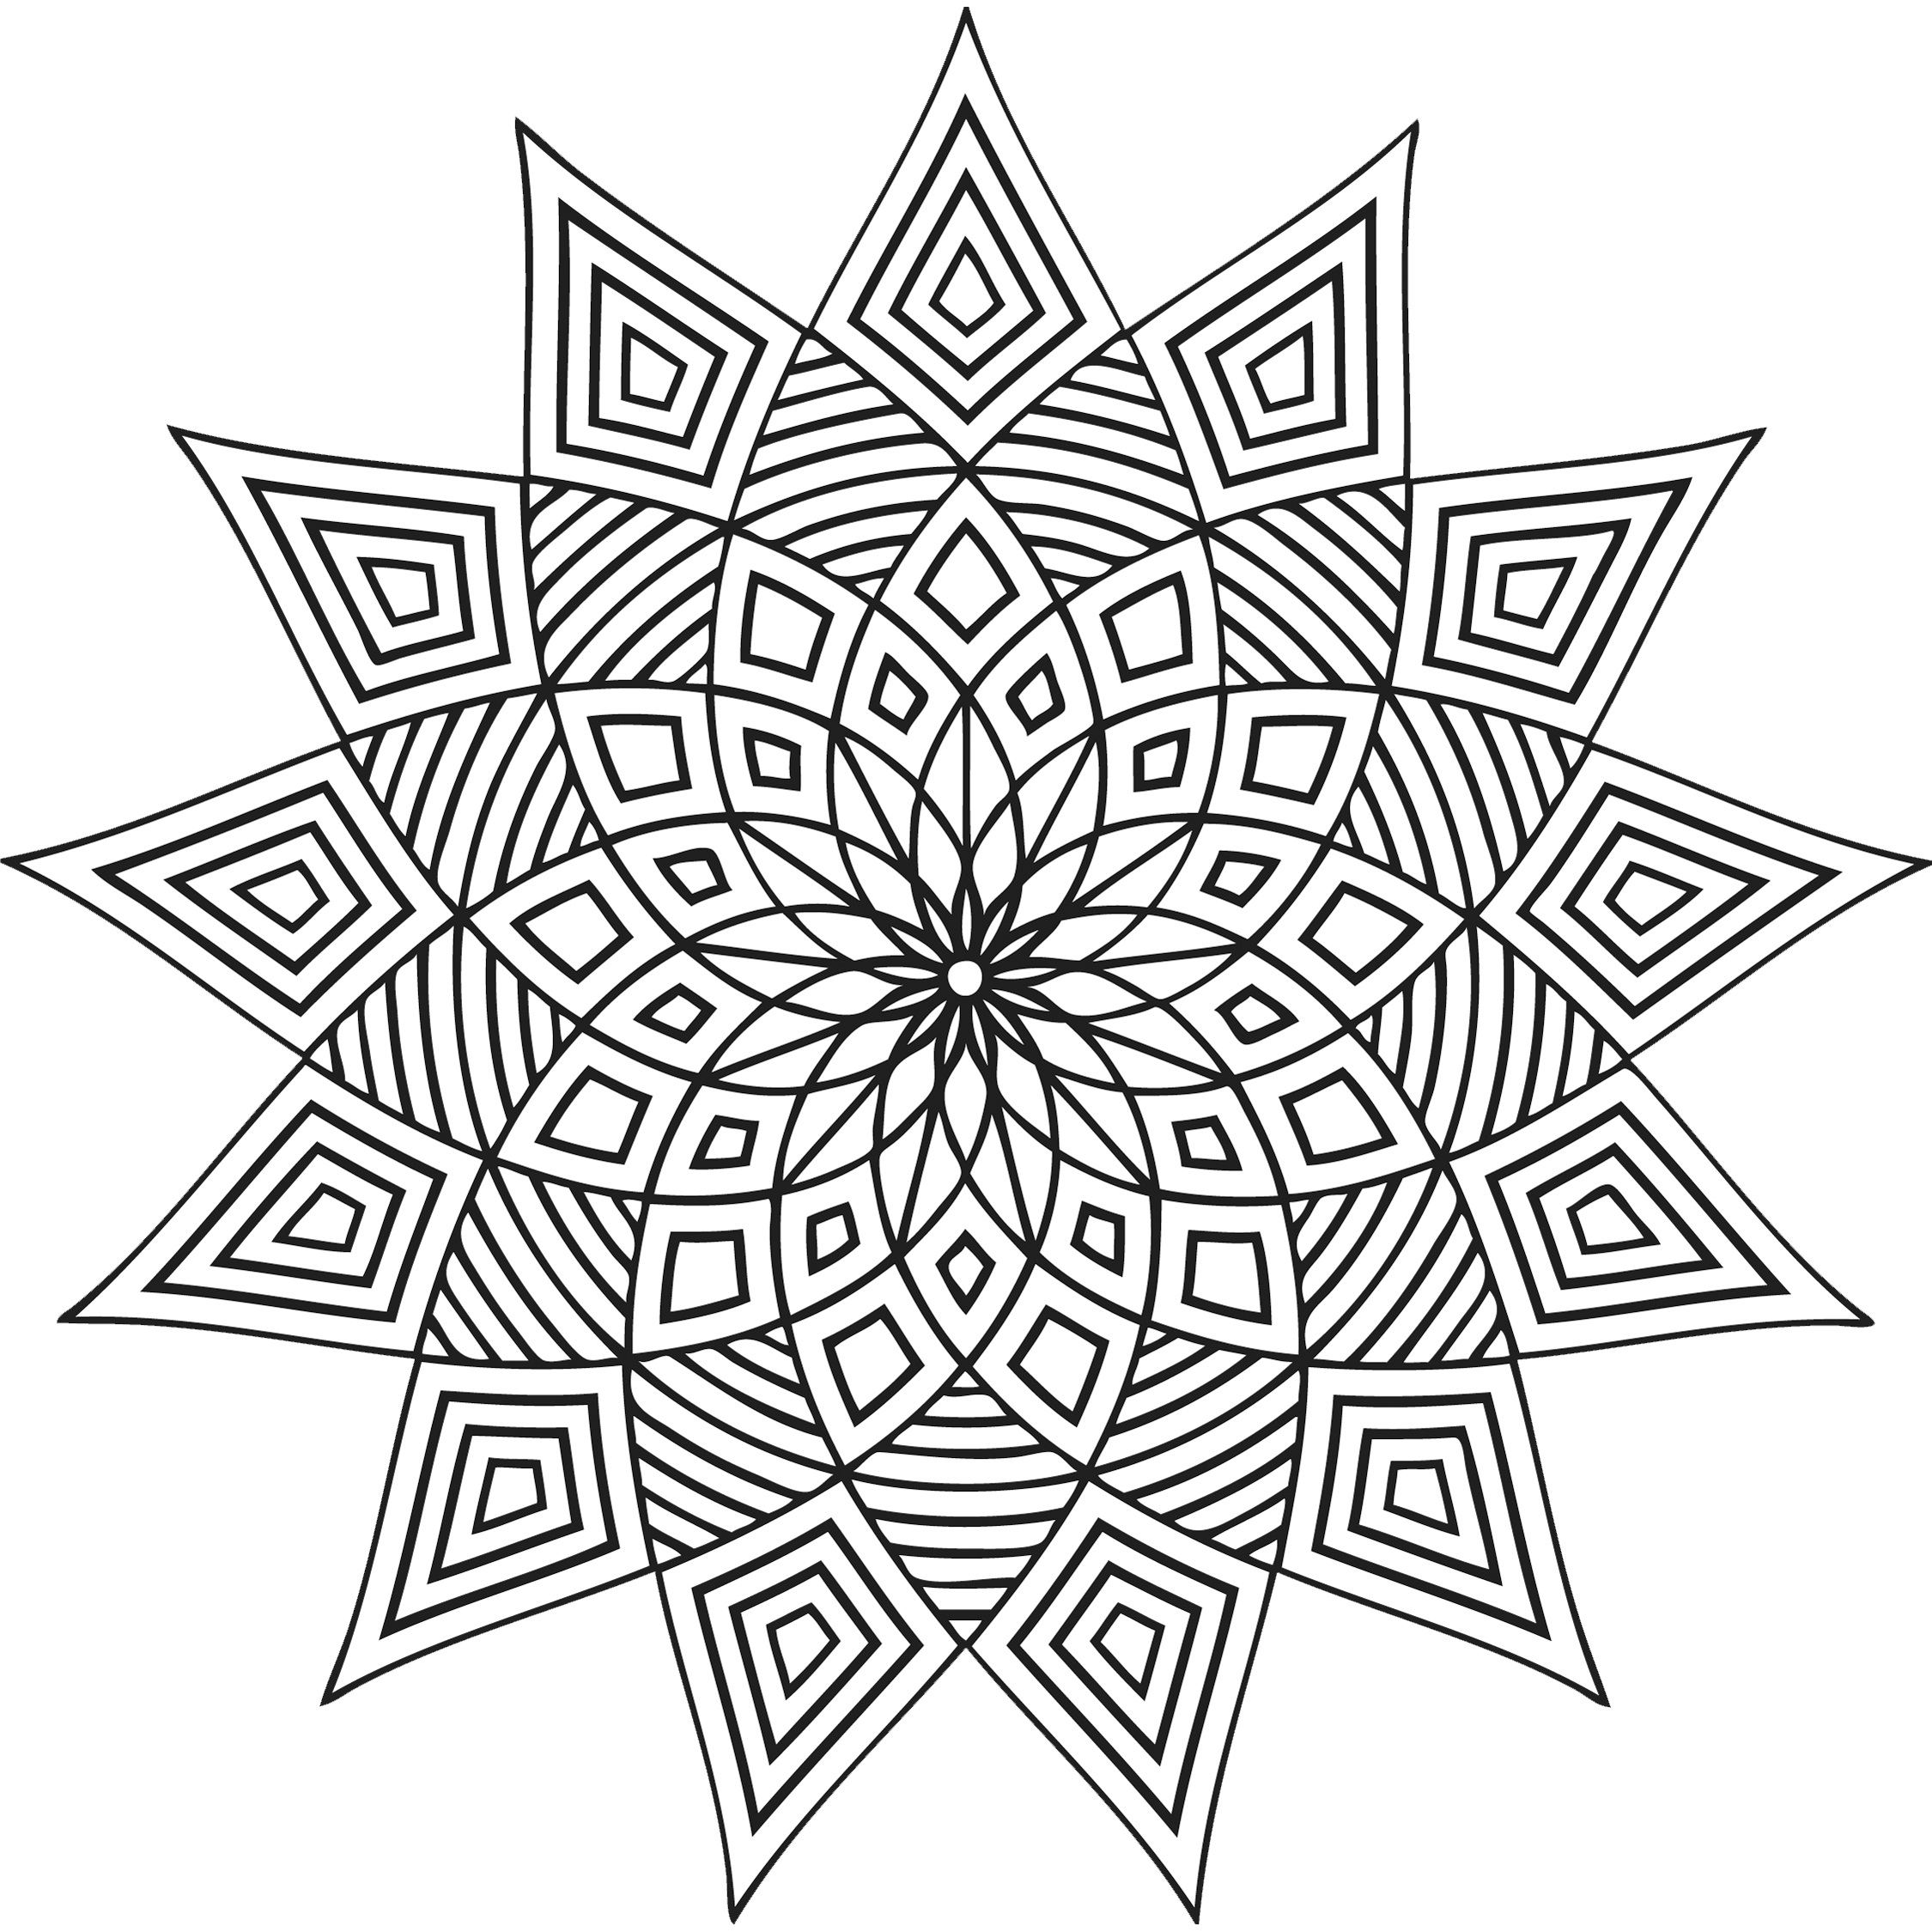 Coloring Pages To Print Designs : Free printable geometric coloring pages for kids